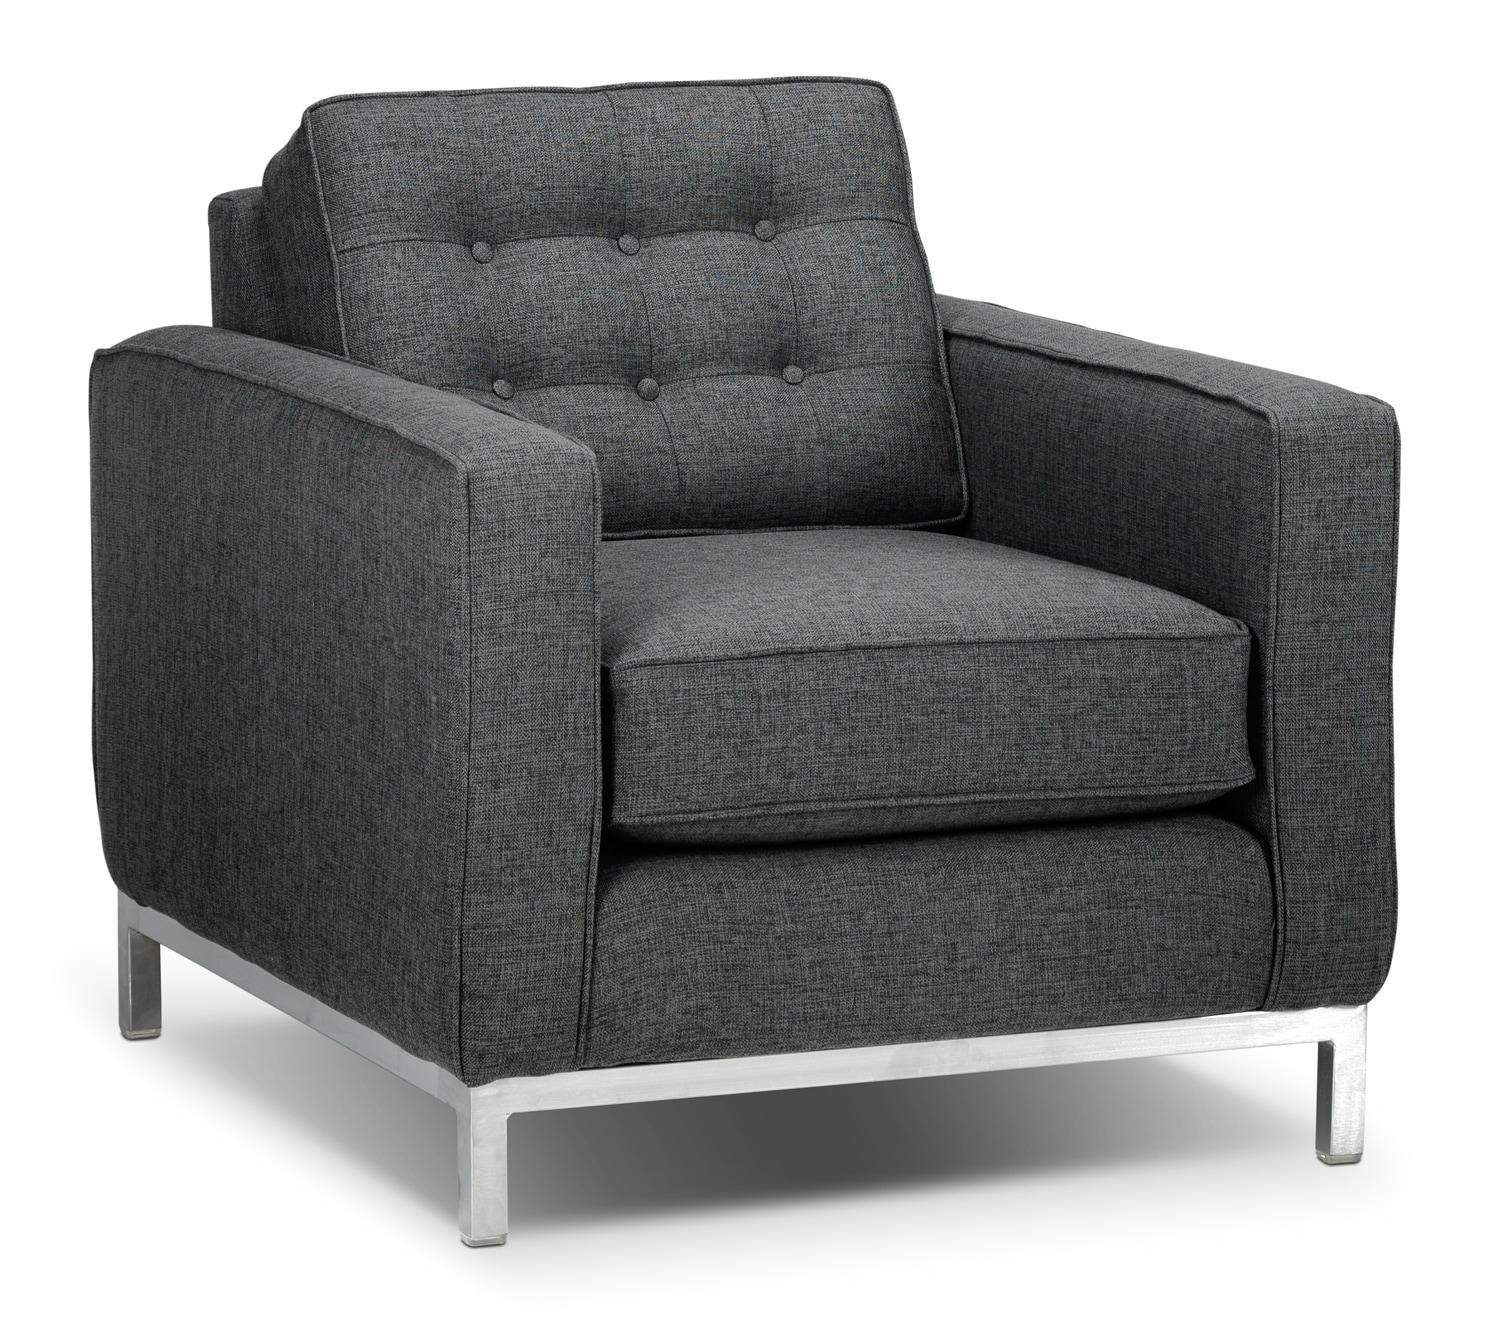 Living Room Furniture - Brunswick Chair - Charcoal